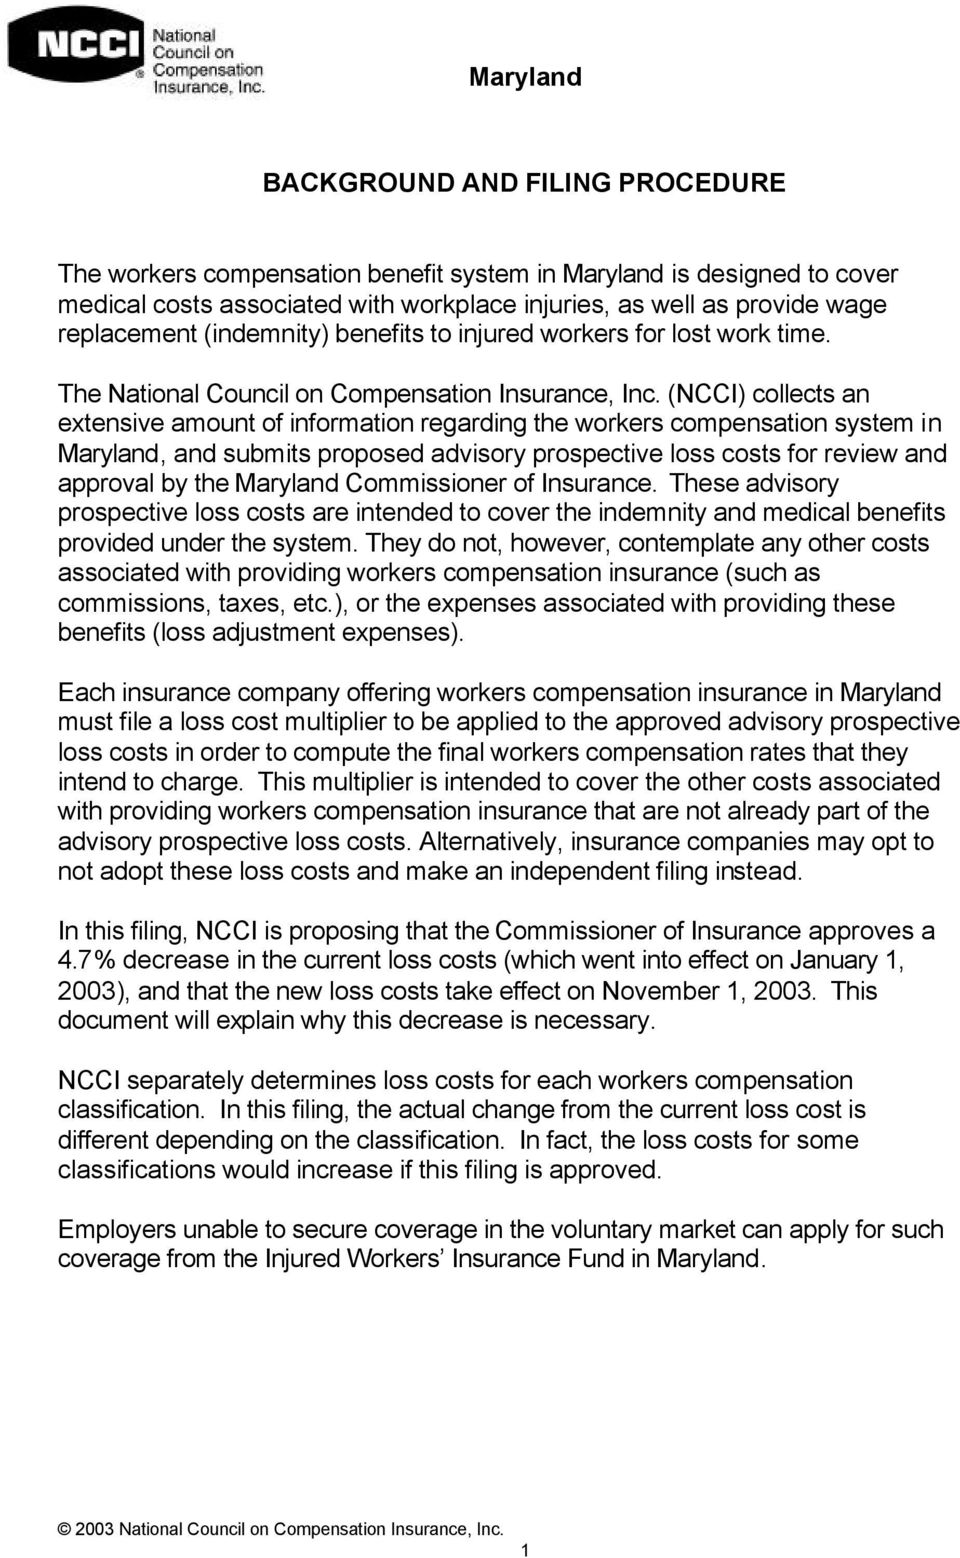 (NCCI) collects an extensive amount of information regarding the workers compensation system in Maryland, and submits proposed advisory prospective loss costs for review and approval by the Maryland